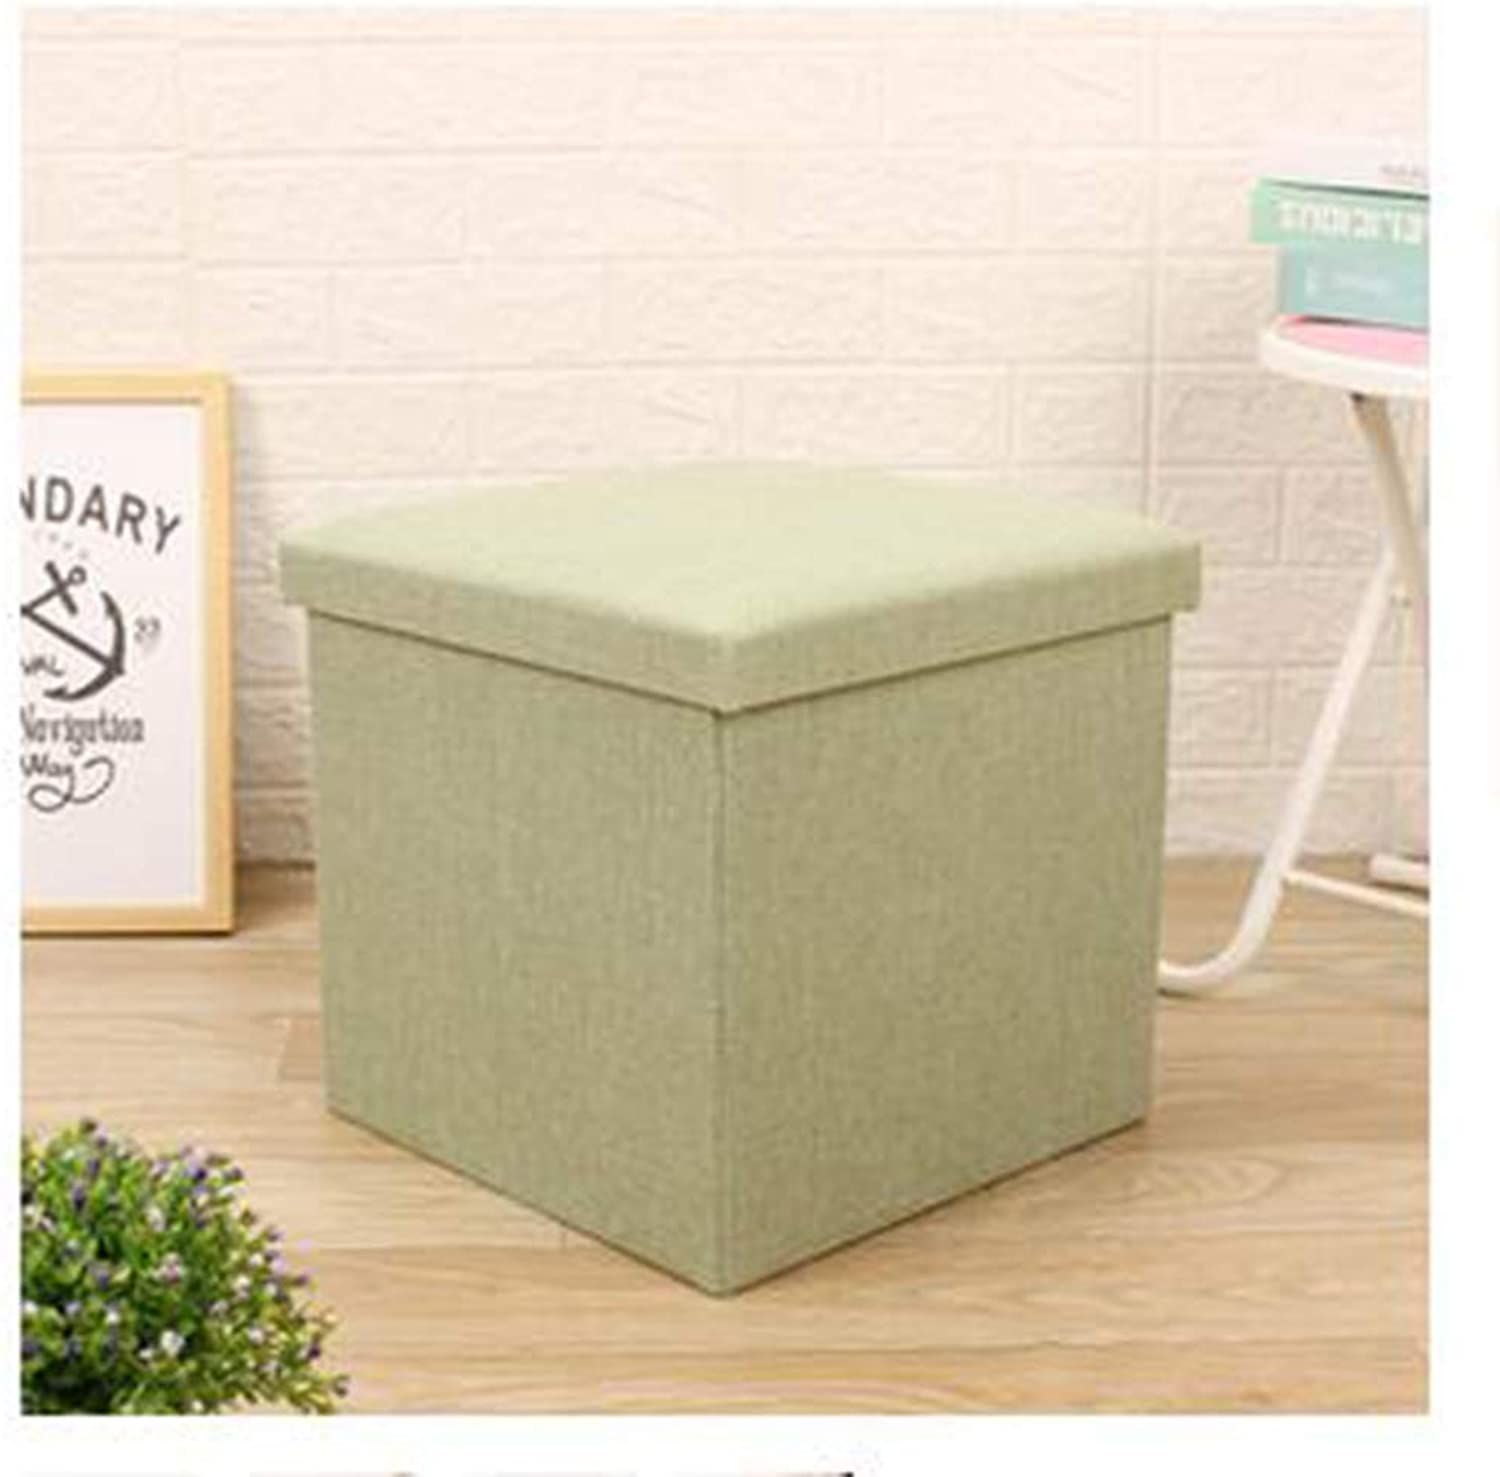 Storage Box Solid color Simple Cotton and Linen Large Storage Bench Square Bedroom Footstool Folding shoes Storage Storage Box,D